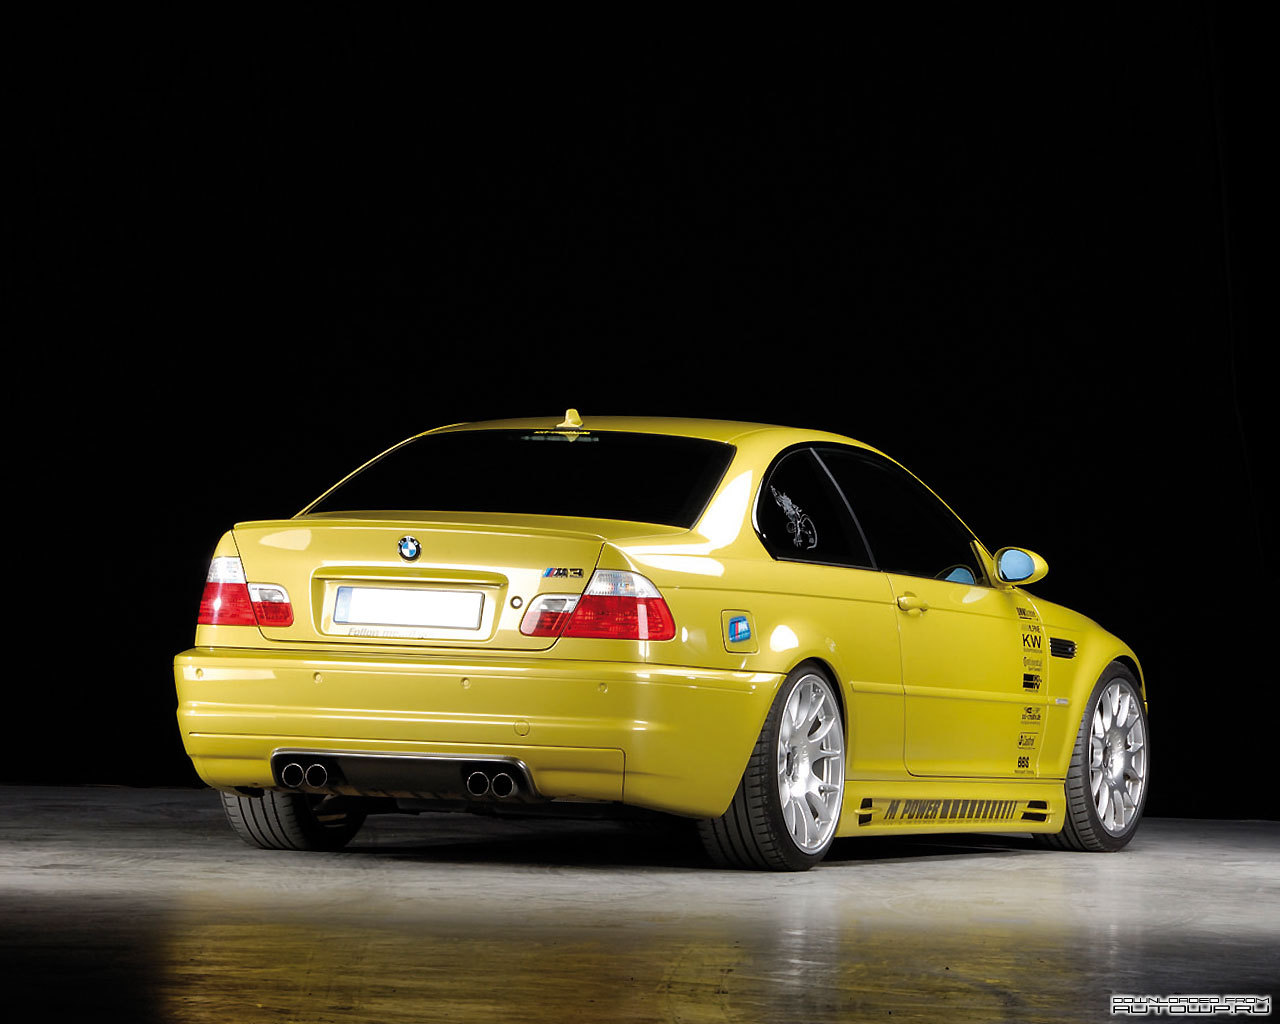 Rieger BMW M3 Coupe (E46) photos - PhotoGallery with 2 ...